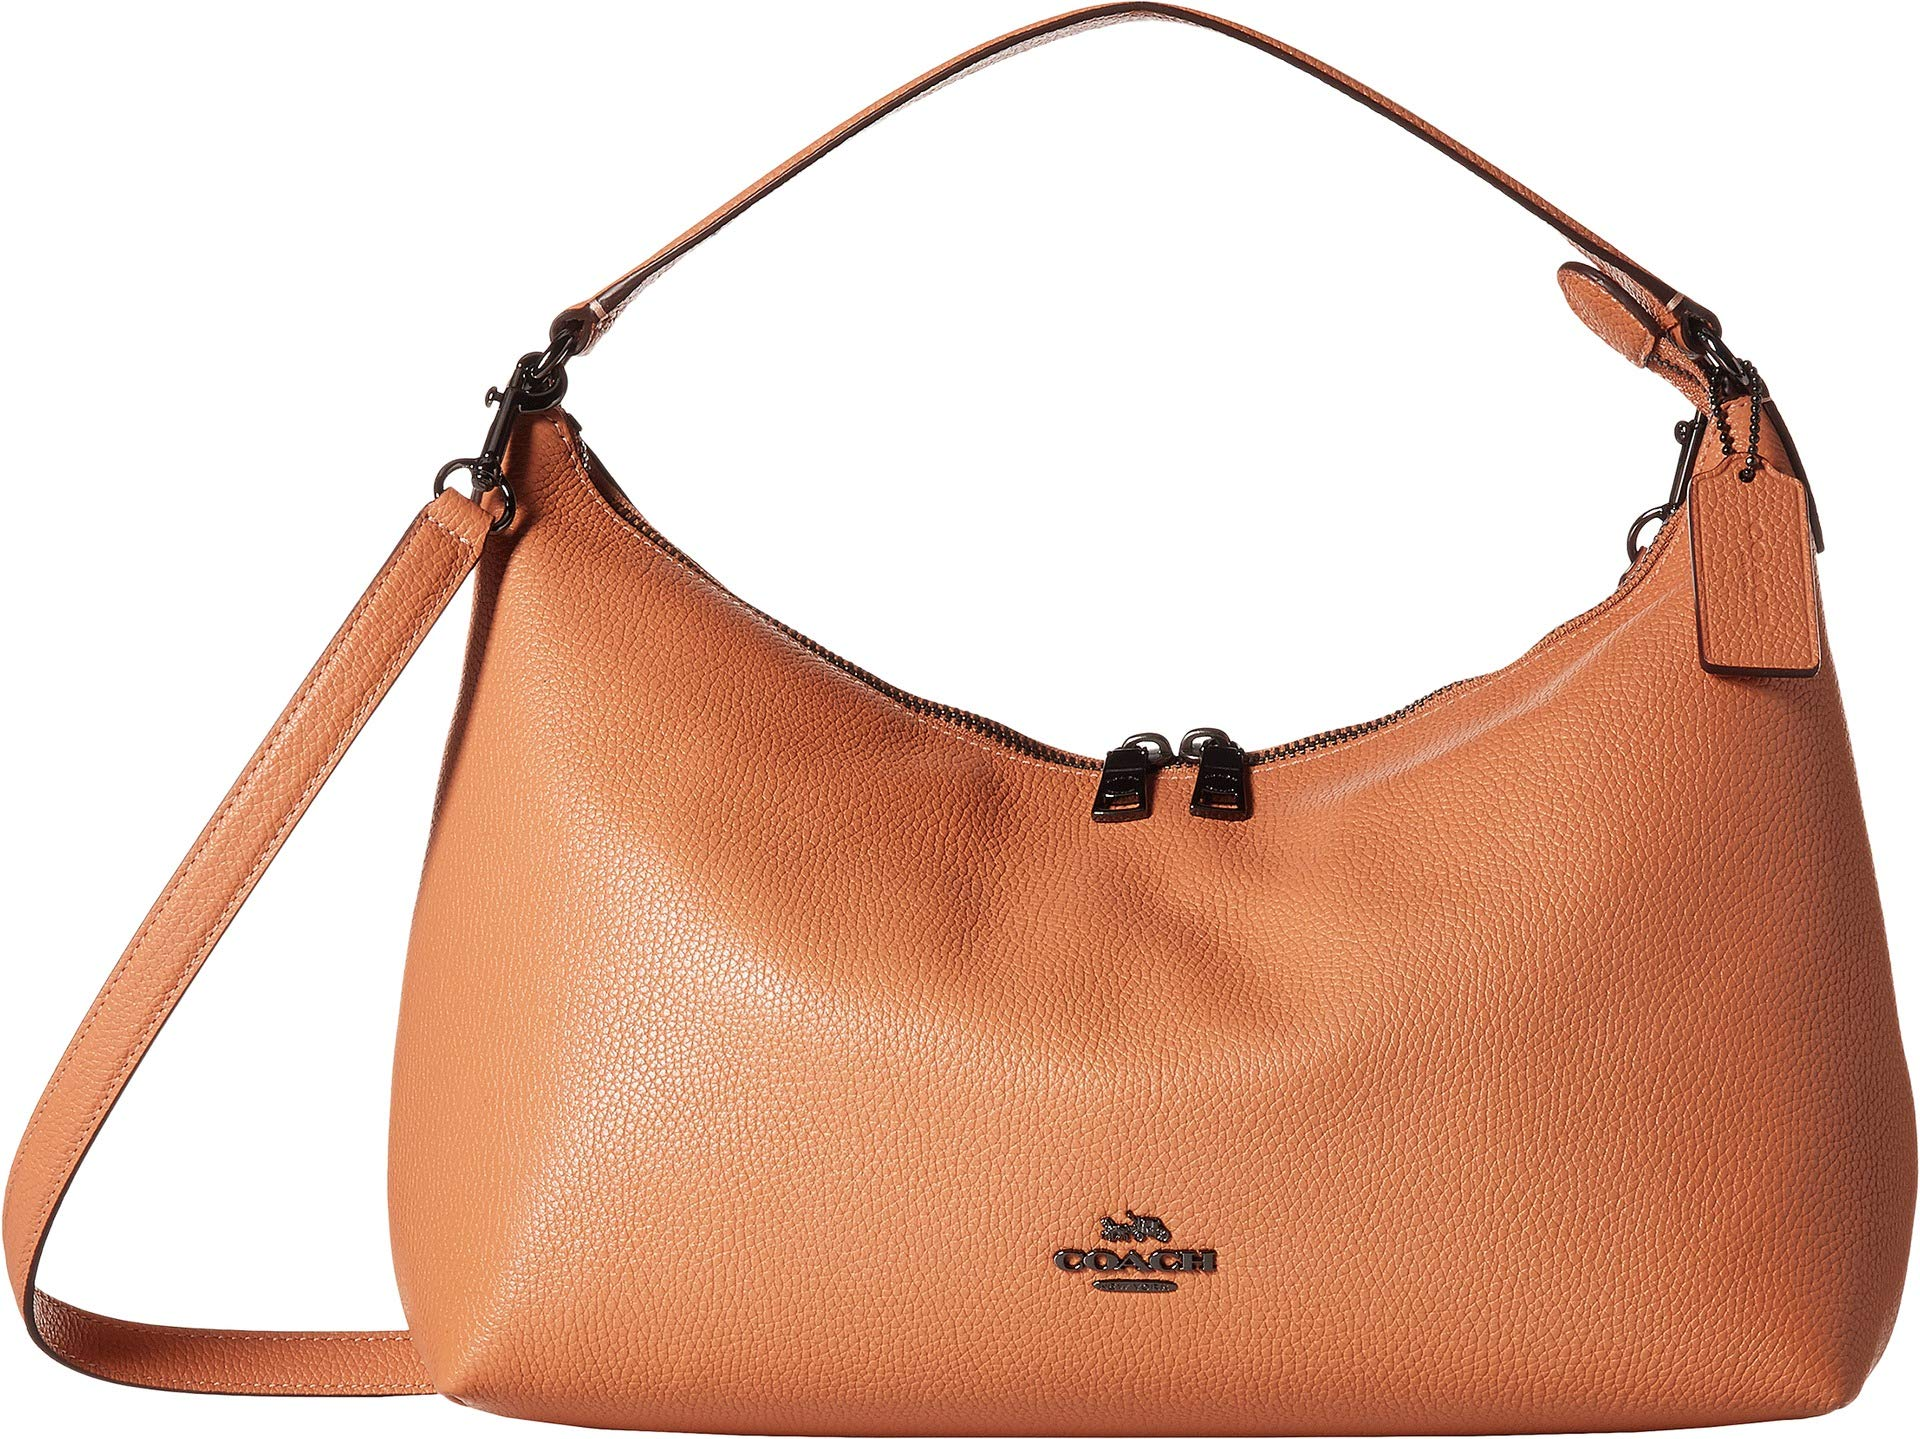 COACH Women's Pebbled Leather East/West Celeste Convertible Hobo Dark Blush One Size